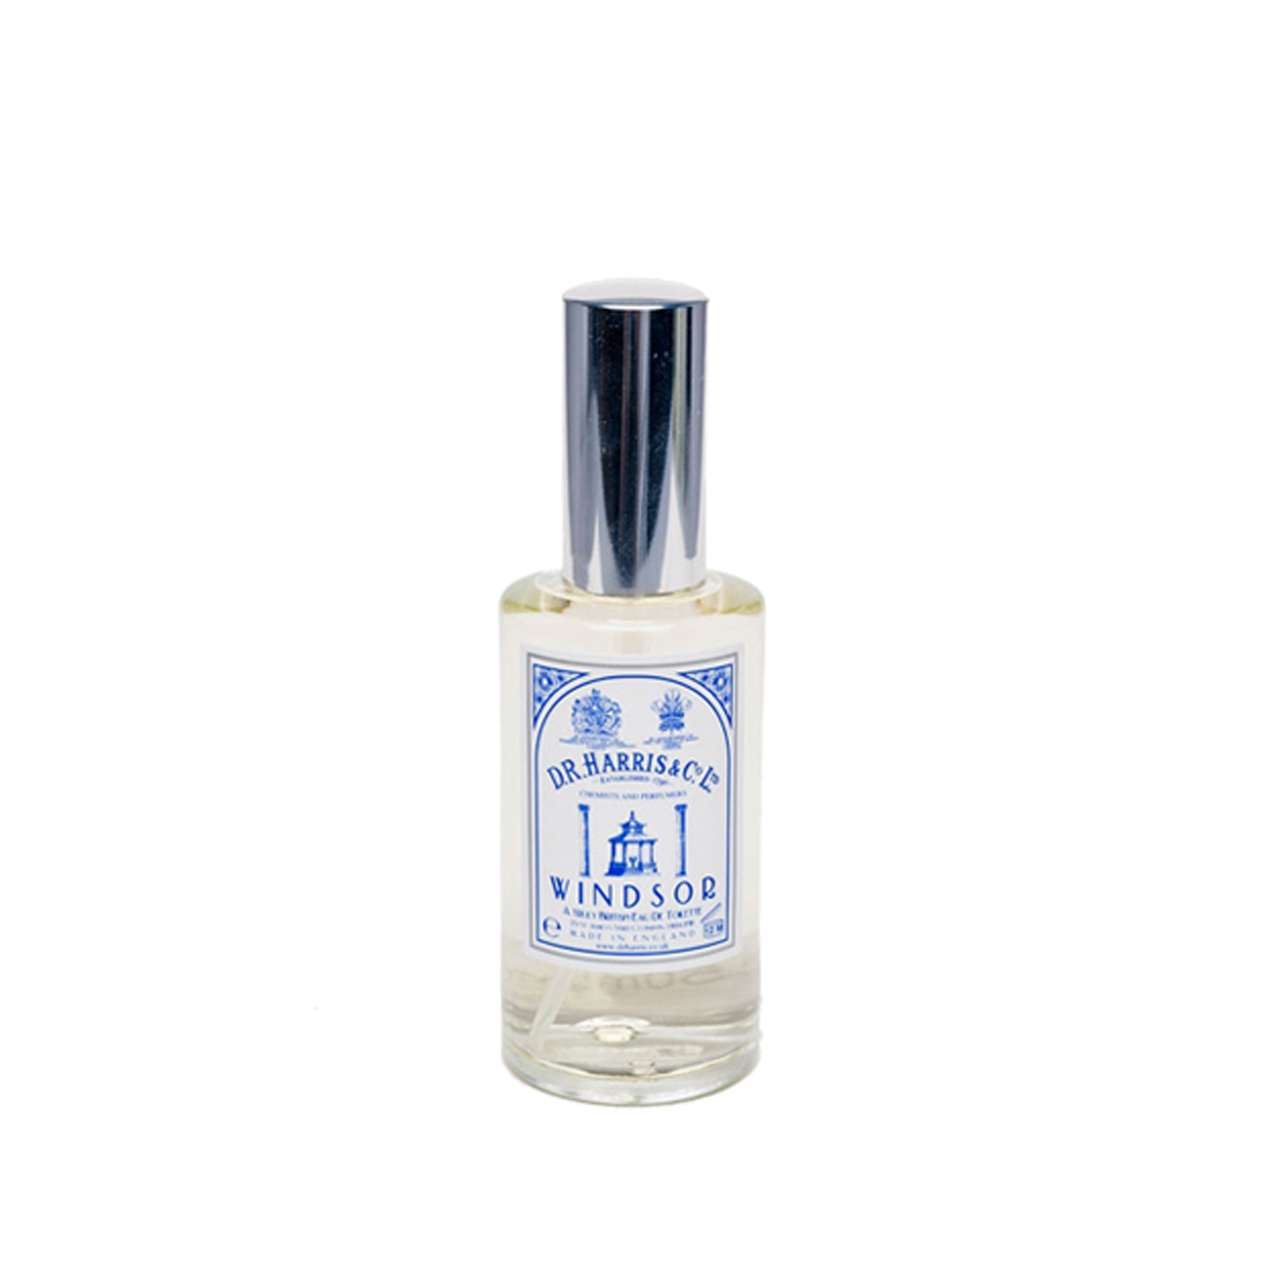 Windsor - Eau de Toilette